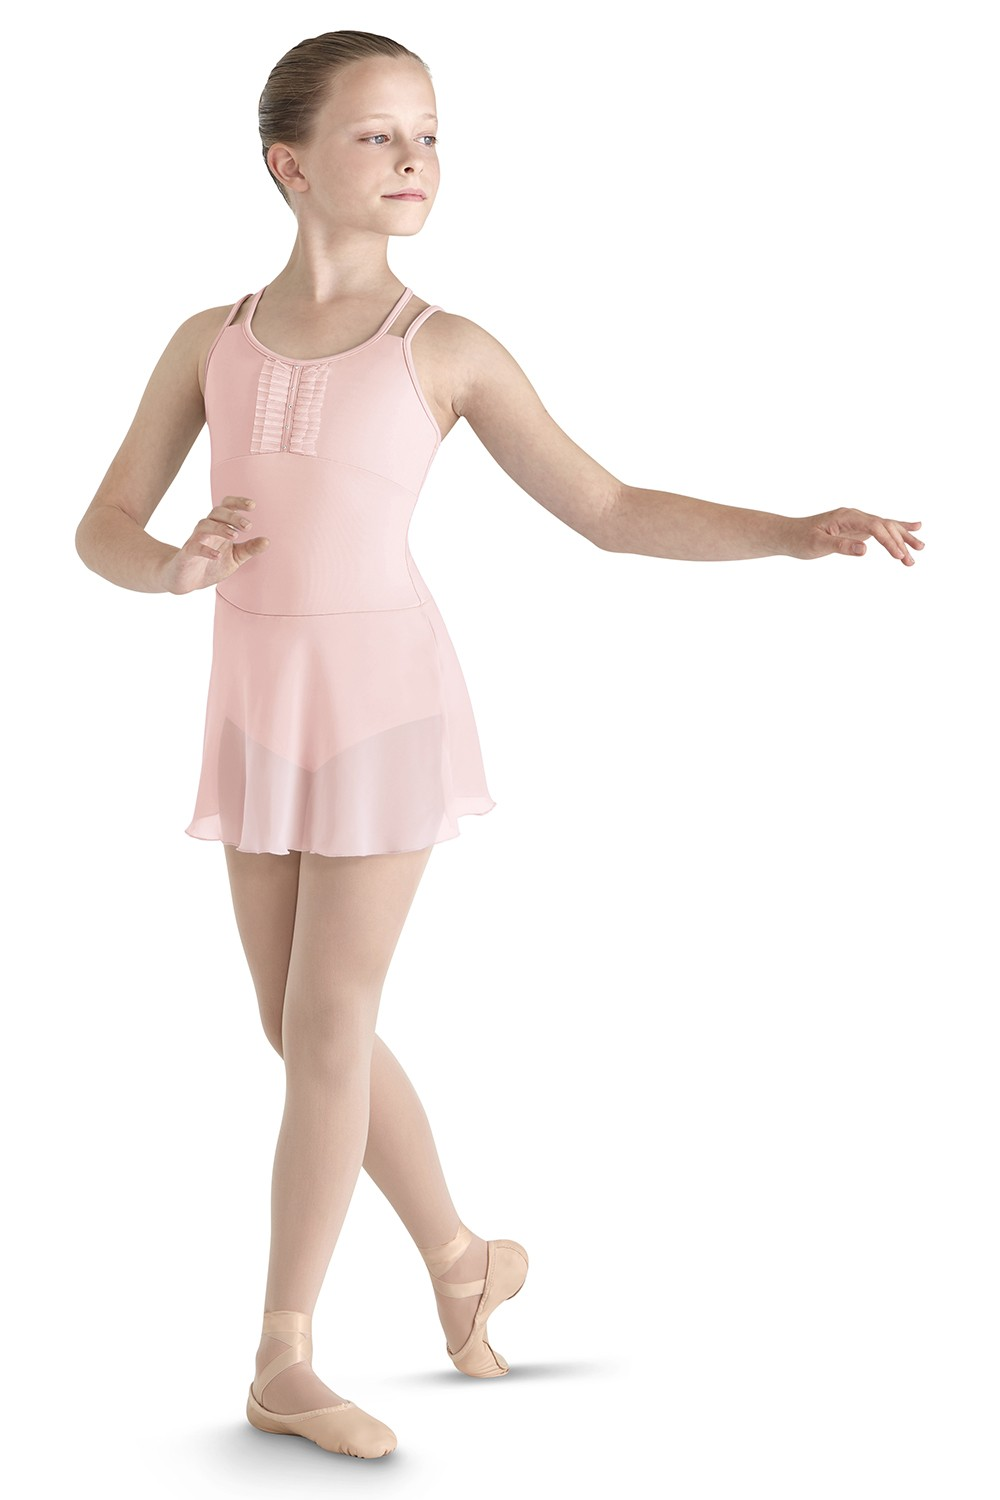 Justaucorps À Bretelles Avec Jupe Girls Skirted Leotards